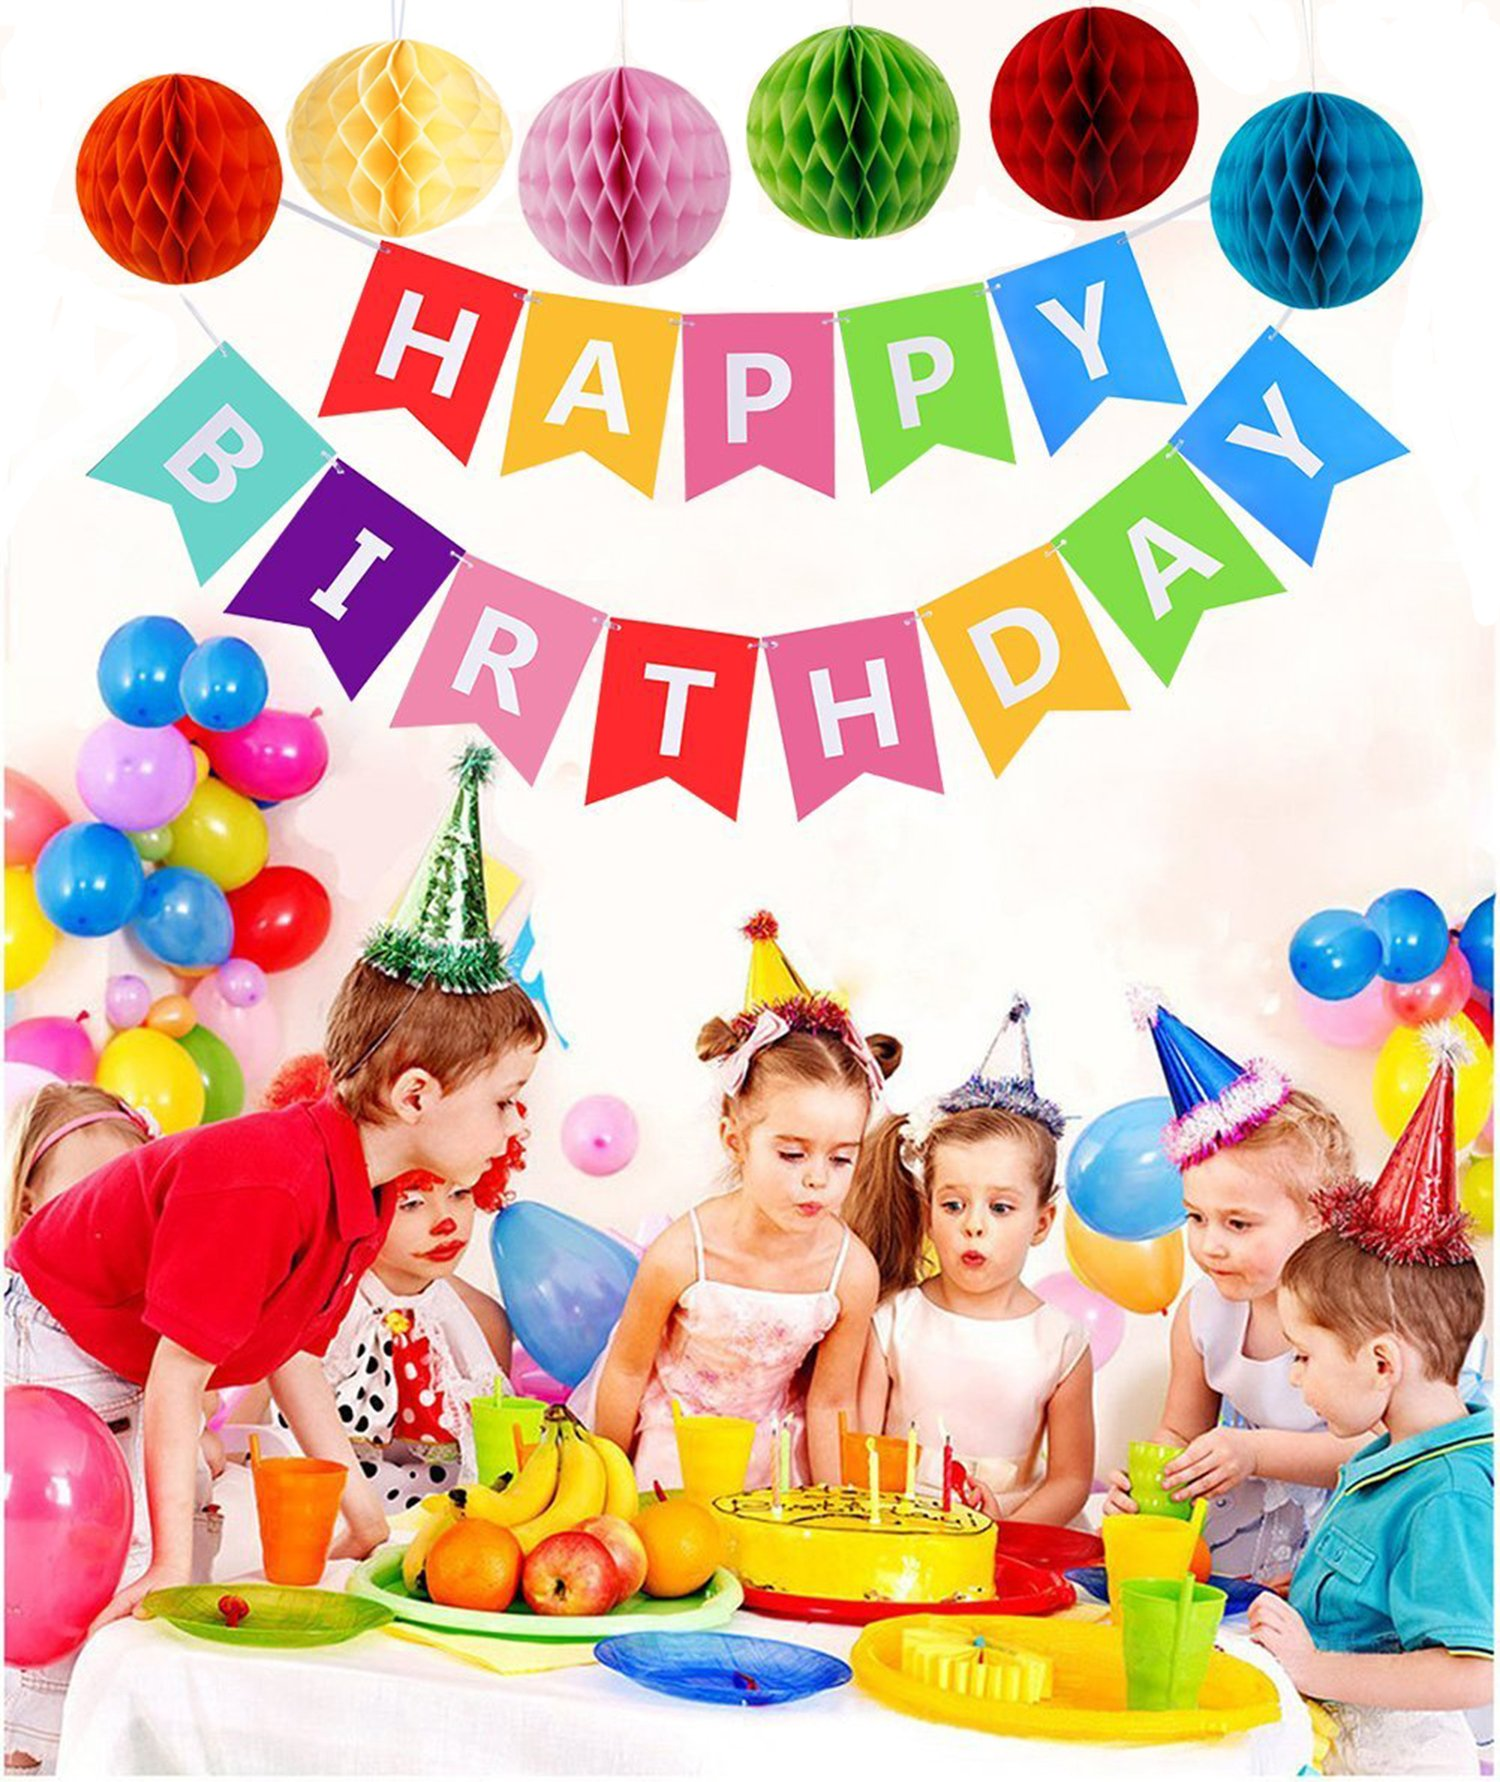 "Kit Decorazione Festa di Compleanno, Striscione ""Happy Birthday"" con 6 Sfere a Nido d\'ape e una Decorazione di Carta Arcobaleno, Party kit"